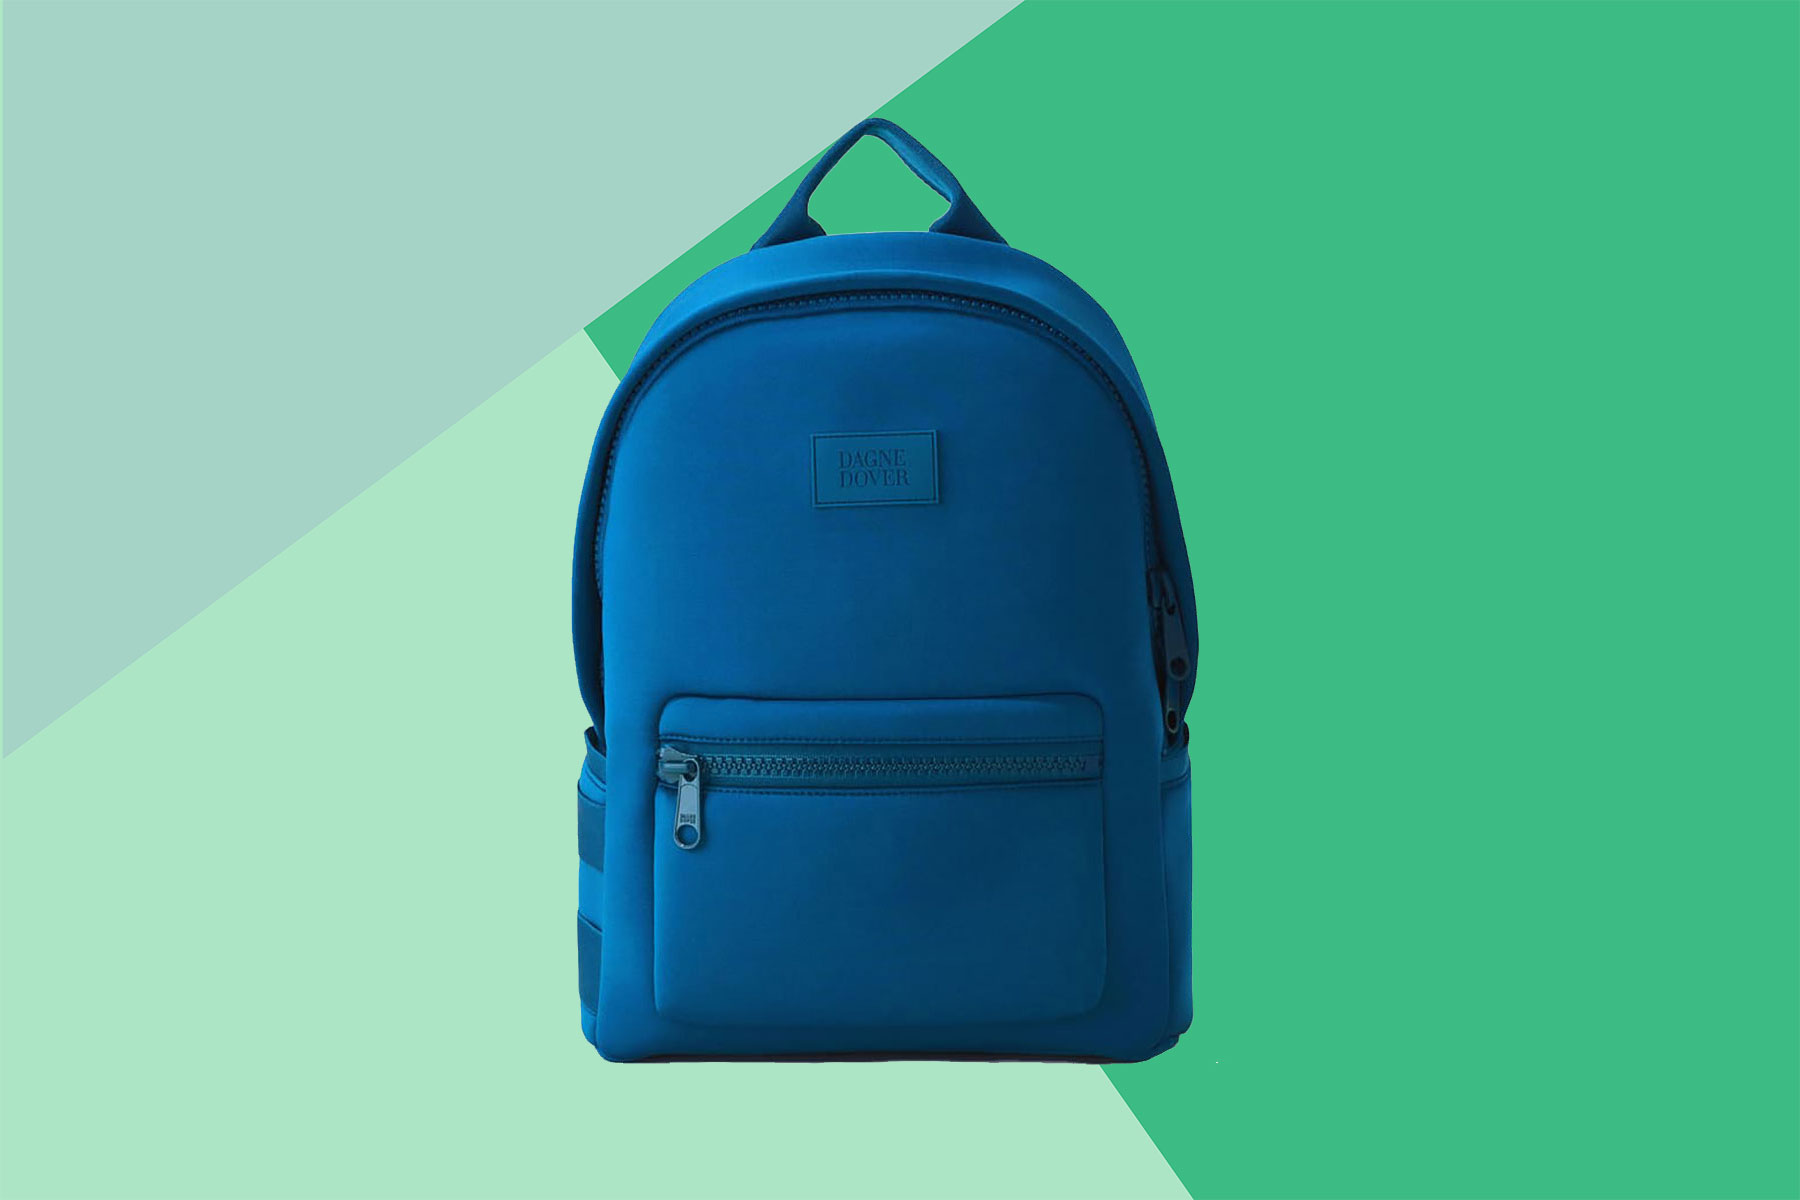 12 Incredibly Stylish Backpacks to Wear to Work and Beyond